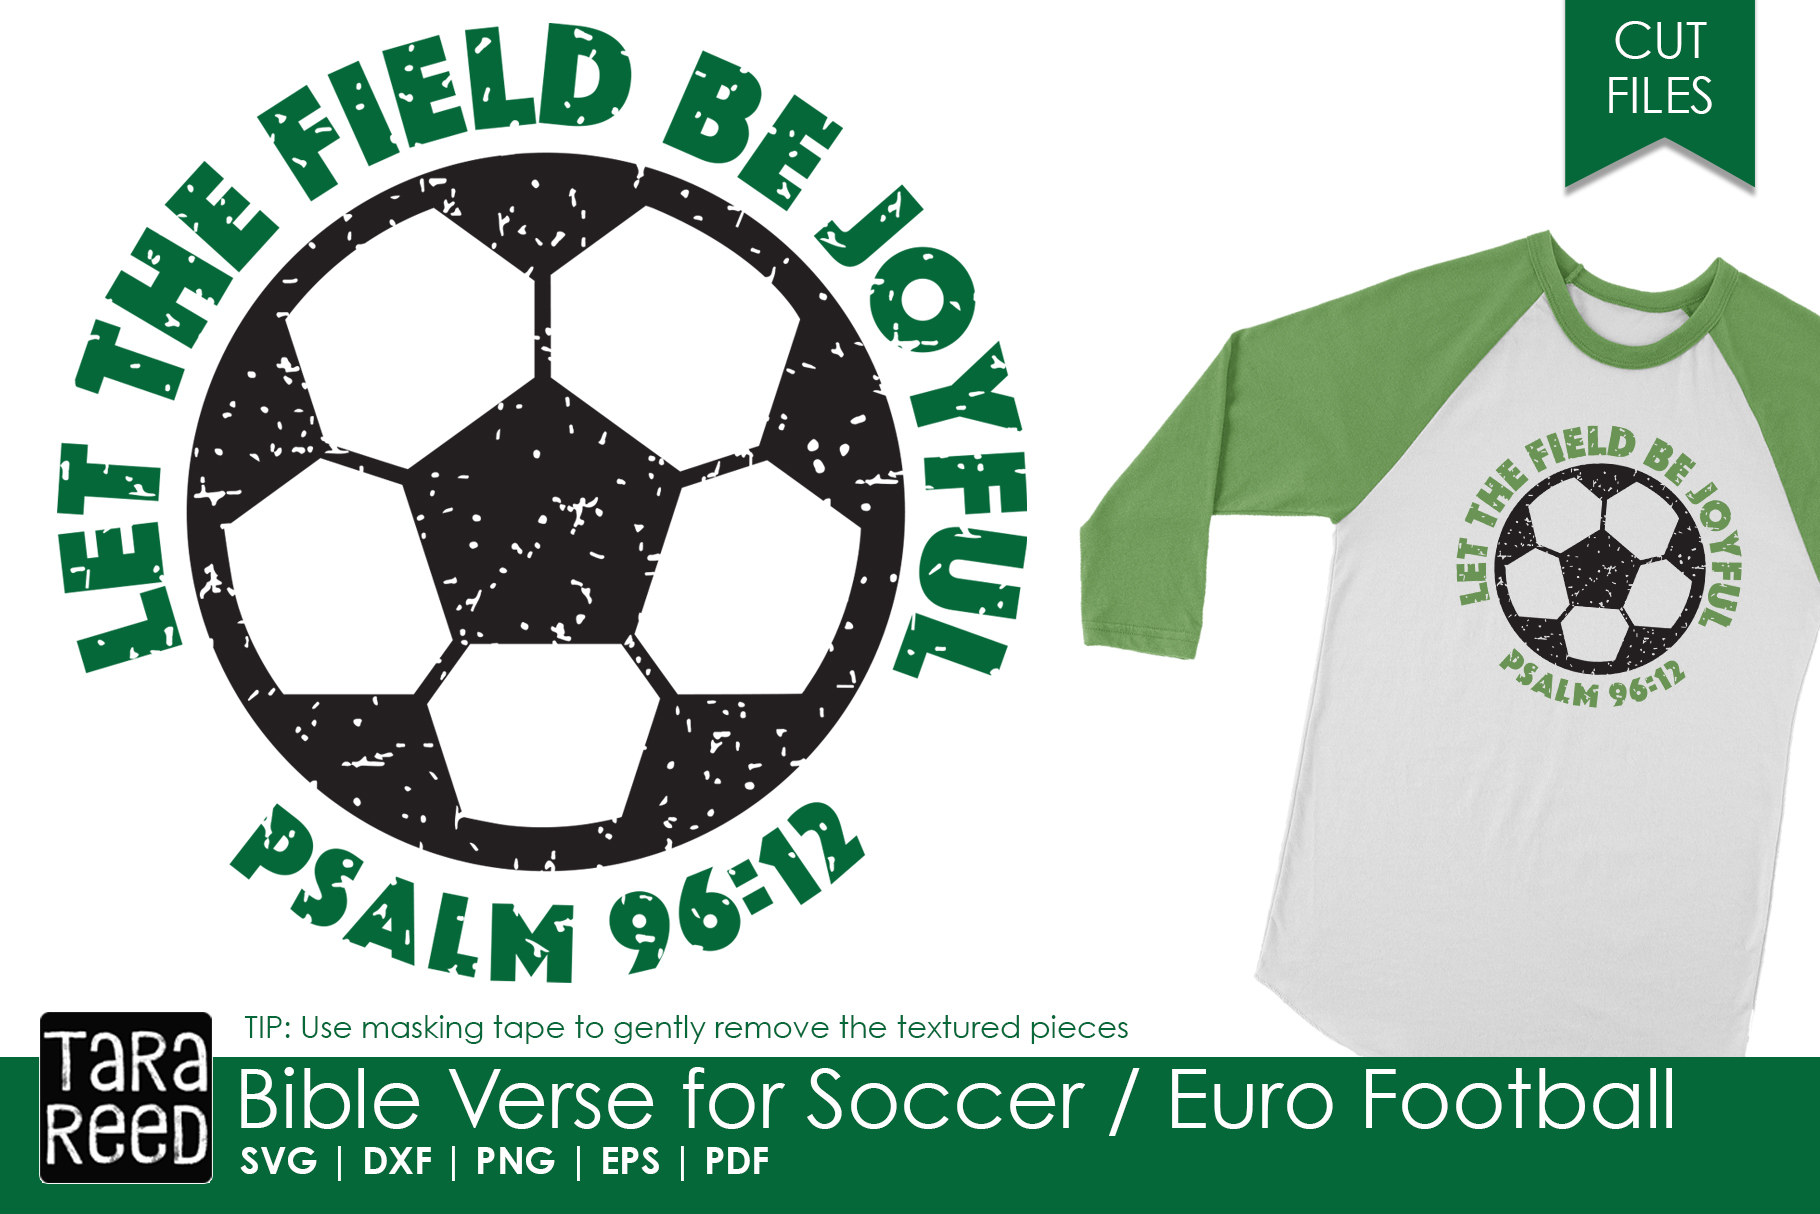 Bible Verse for Soccer / Euro Football - SVG and Cut Files example image 1